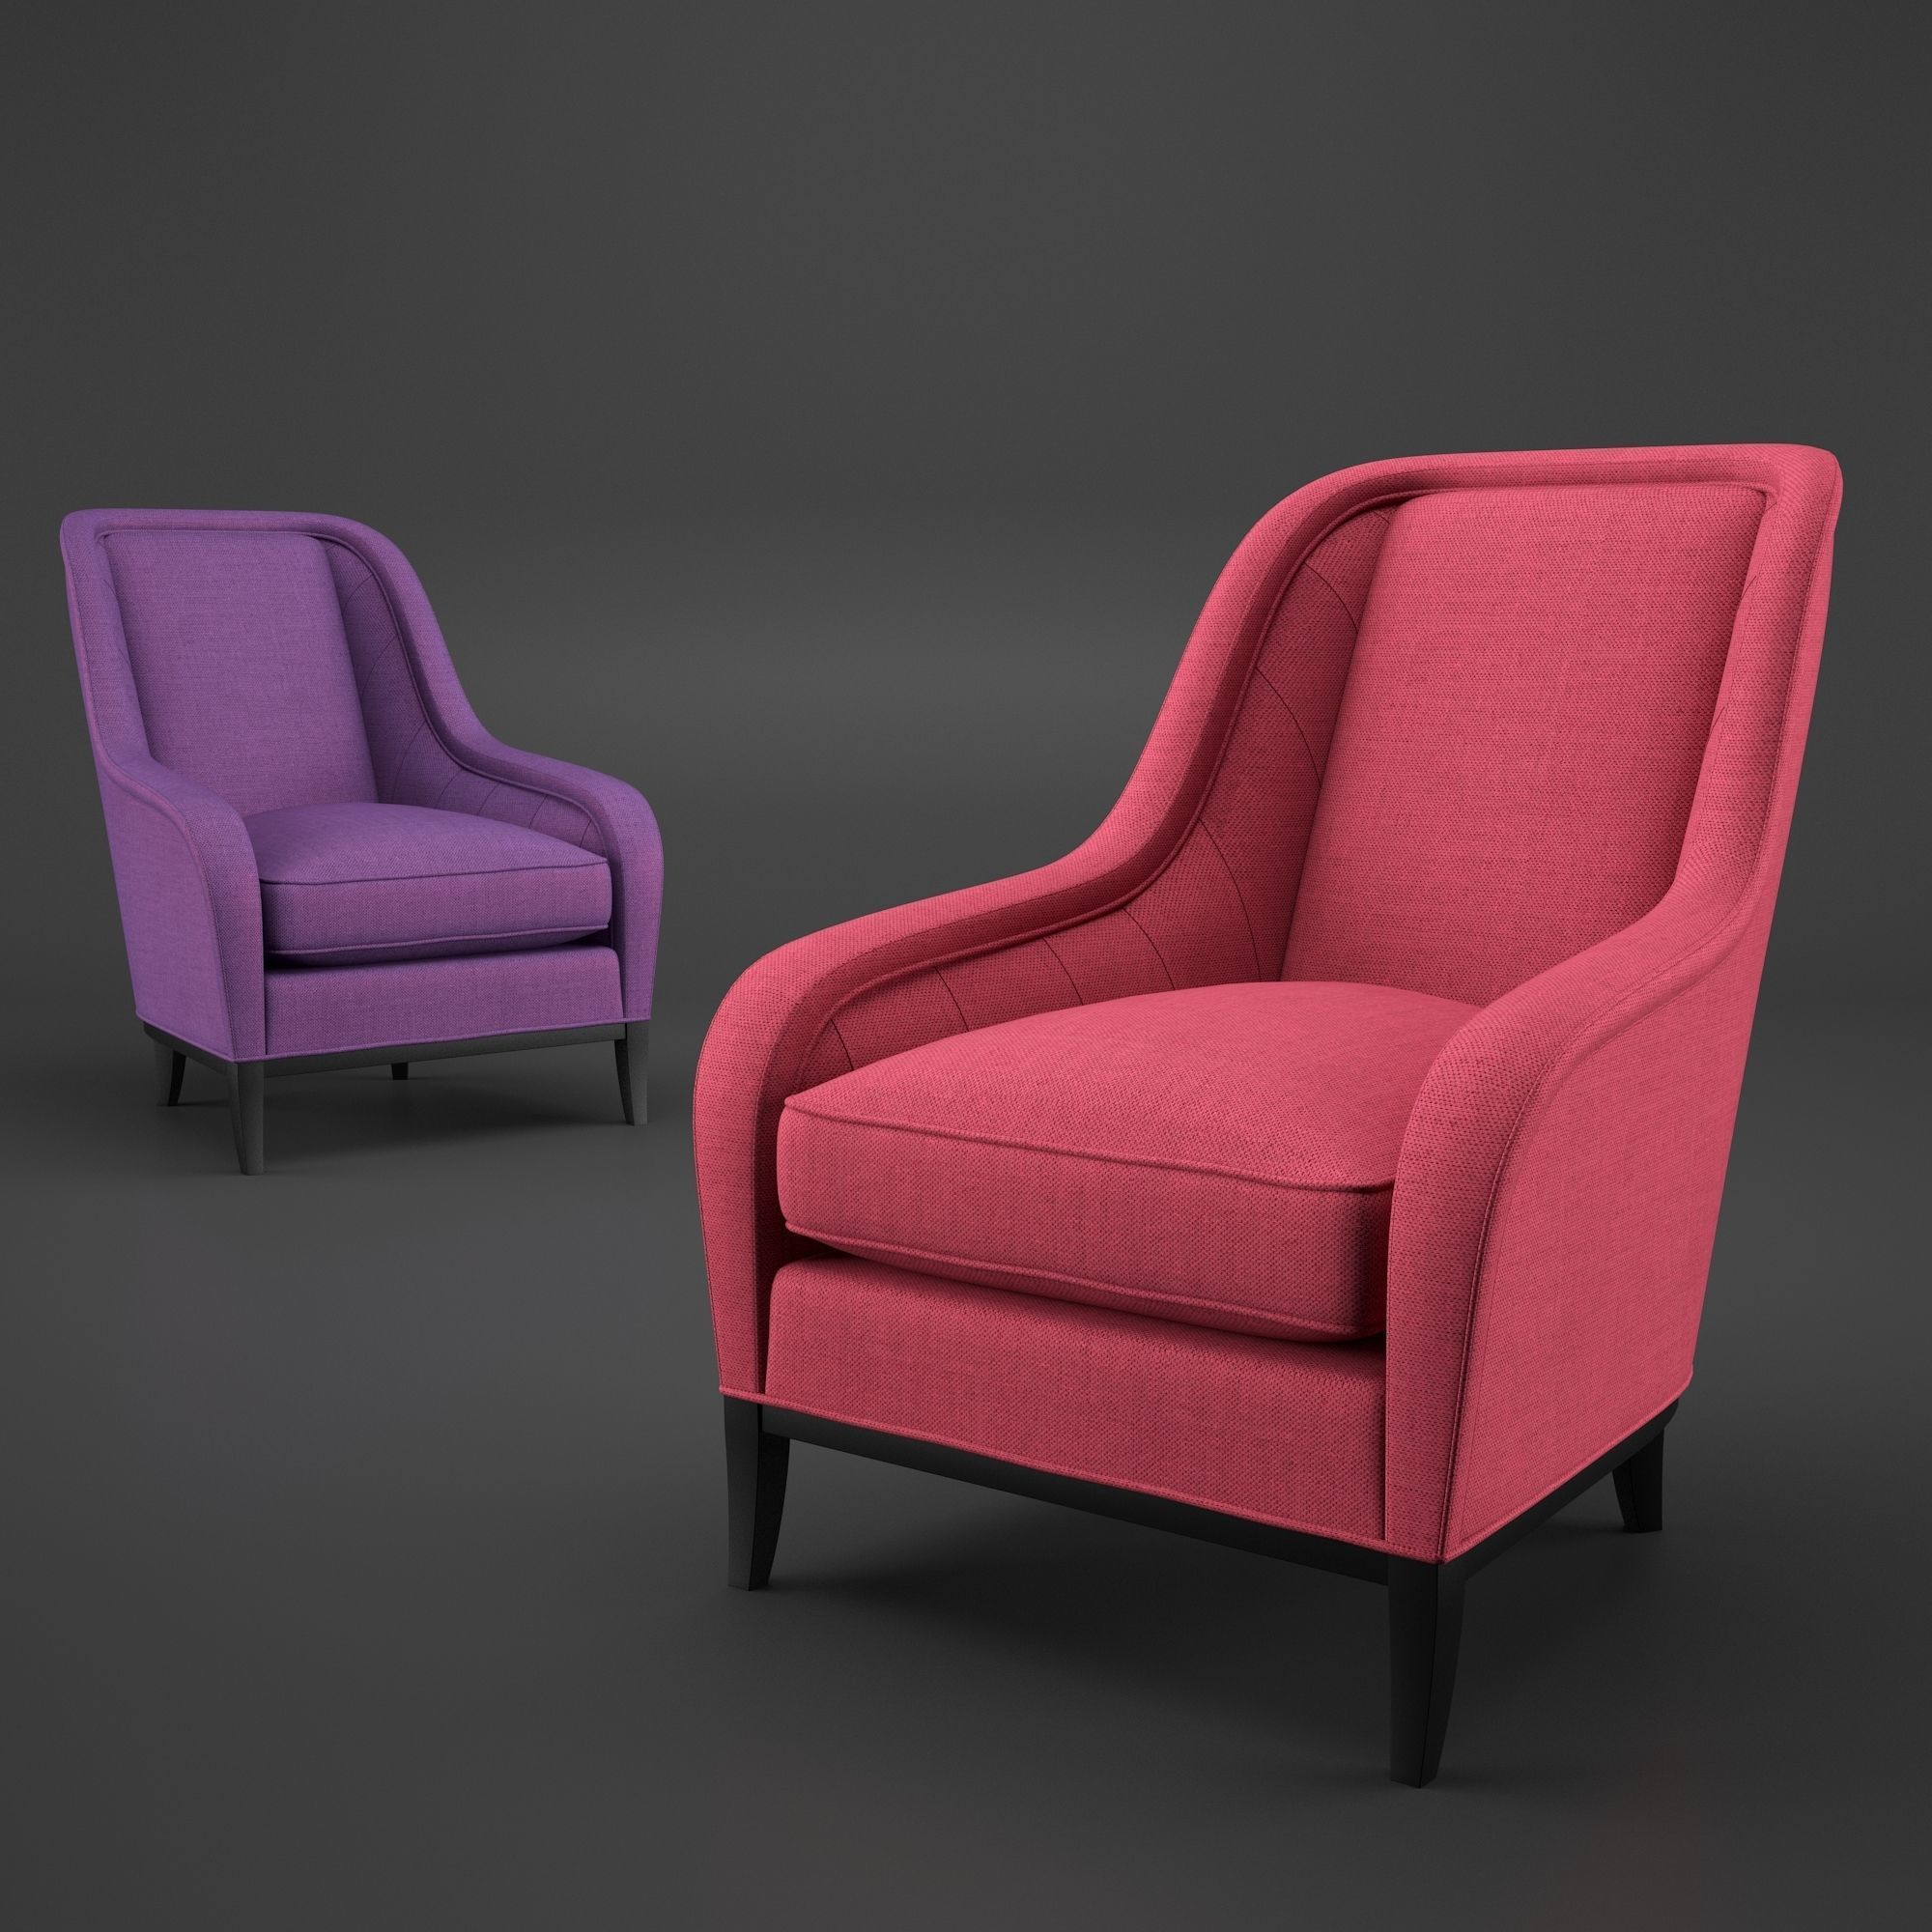 3D model Armchair Liberty | CGTrader